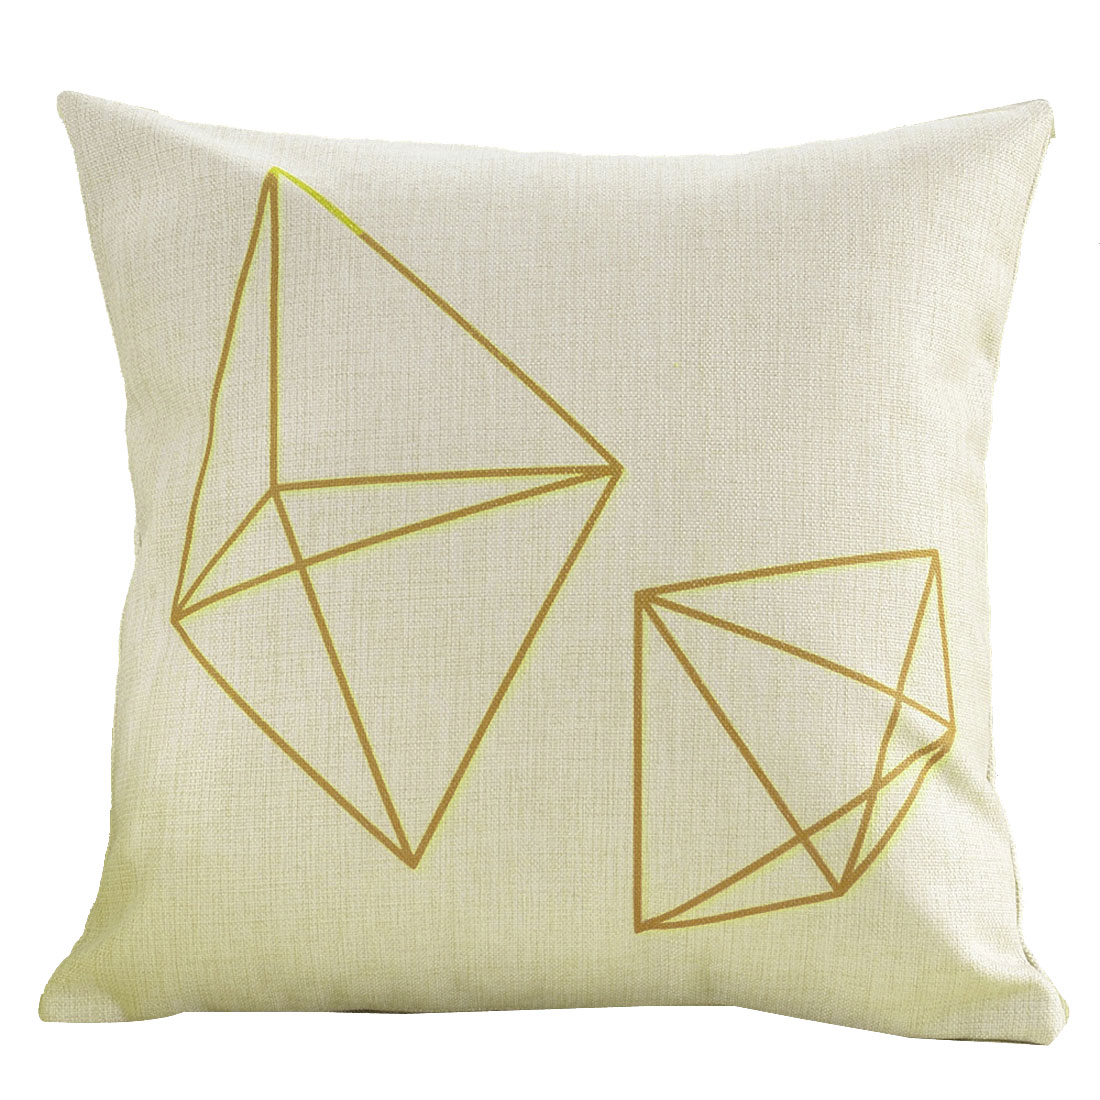 Sofa Cotton Linen Polygon Pattern Square Design Waist Throw Cushion Pillow Cover